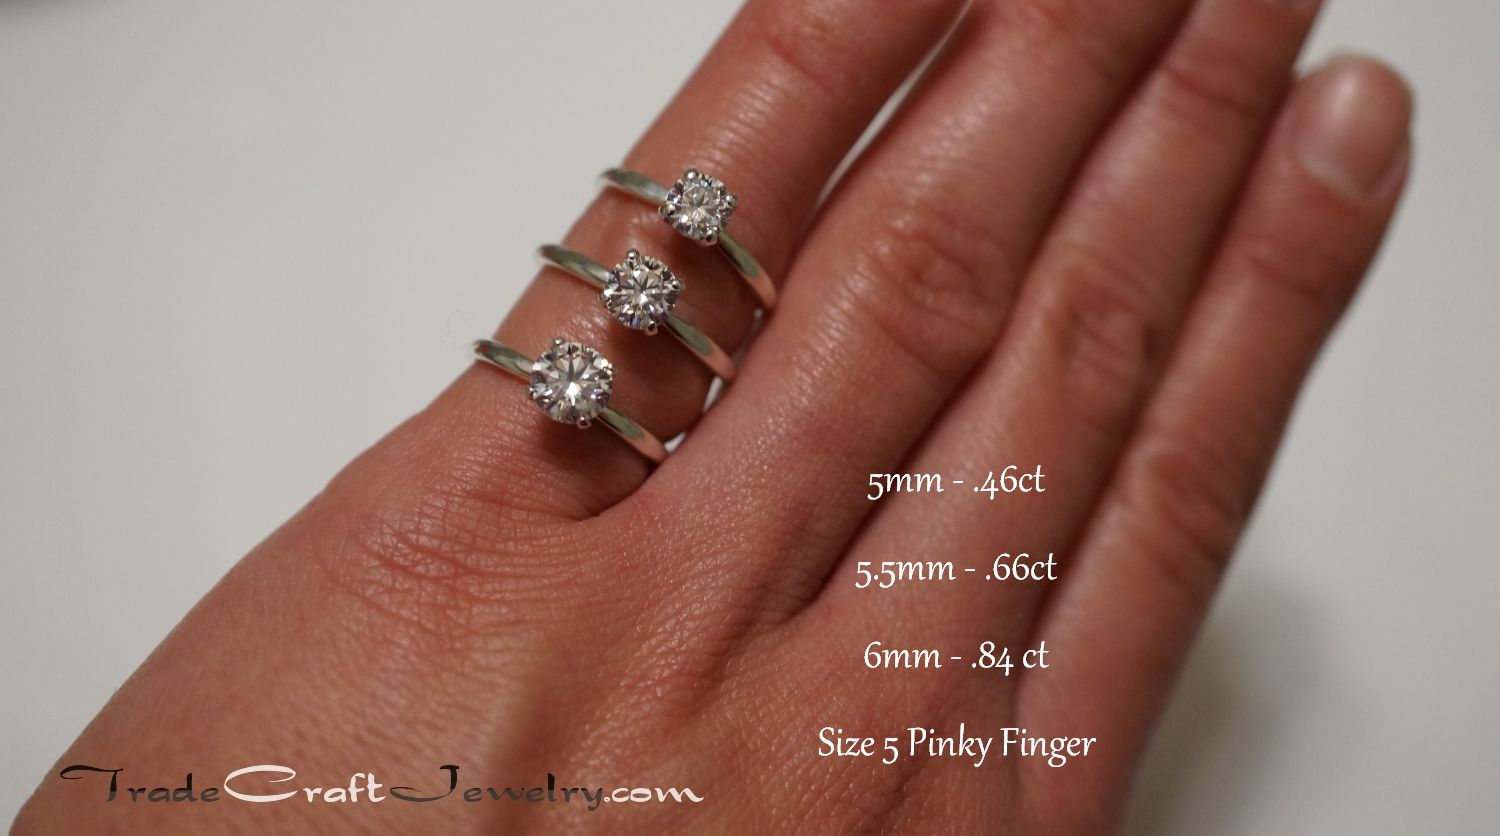 Seeking Pics Of 1 2 Carat To 3 4 Carat Diamond E Rings On Size 5 Finger Weddingbee 2 Carat Ring Rings Lovely Jewellery